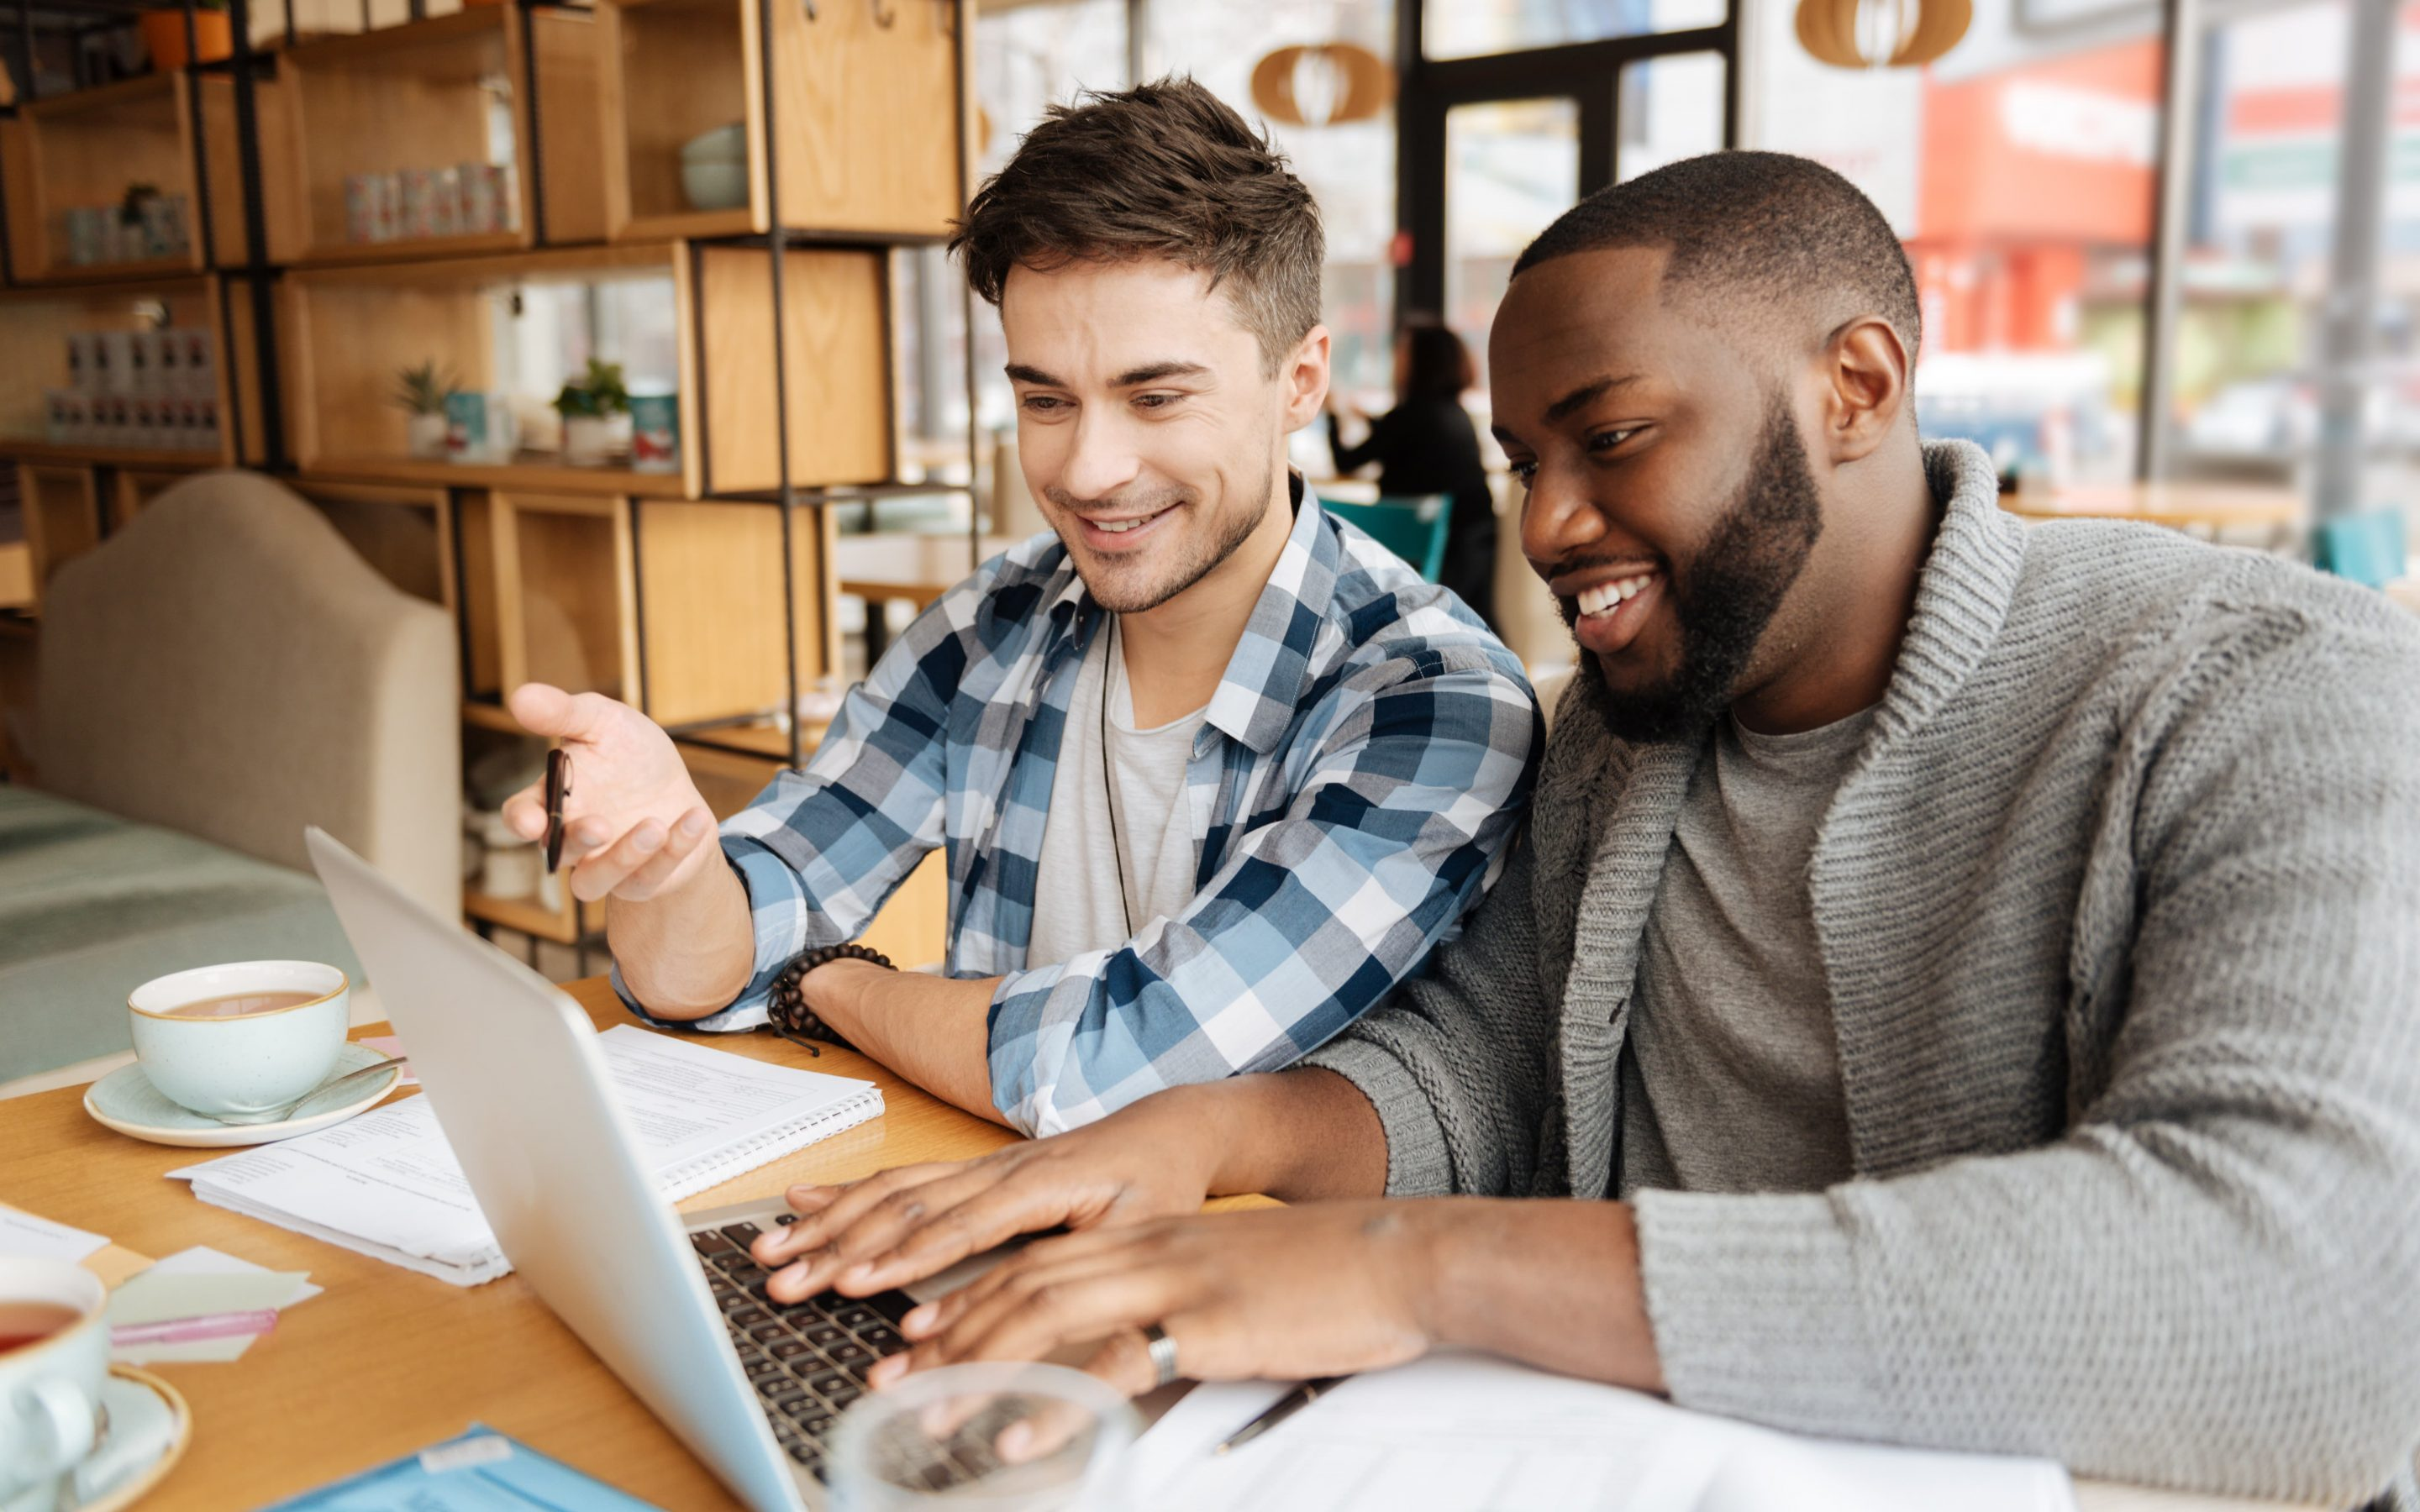 The Benefits and Challenges of Homeownership For Millennials